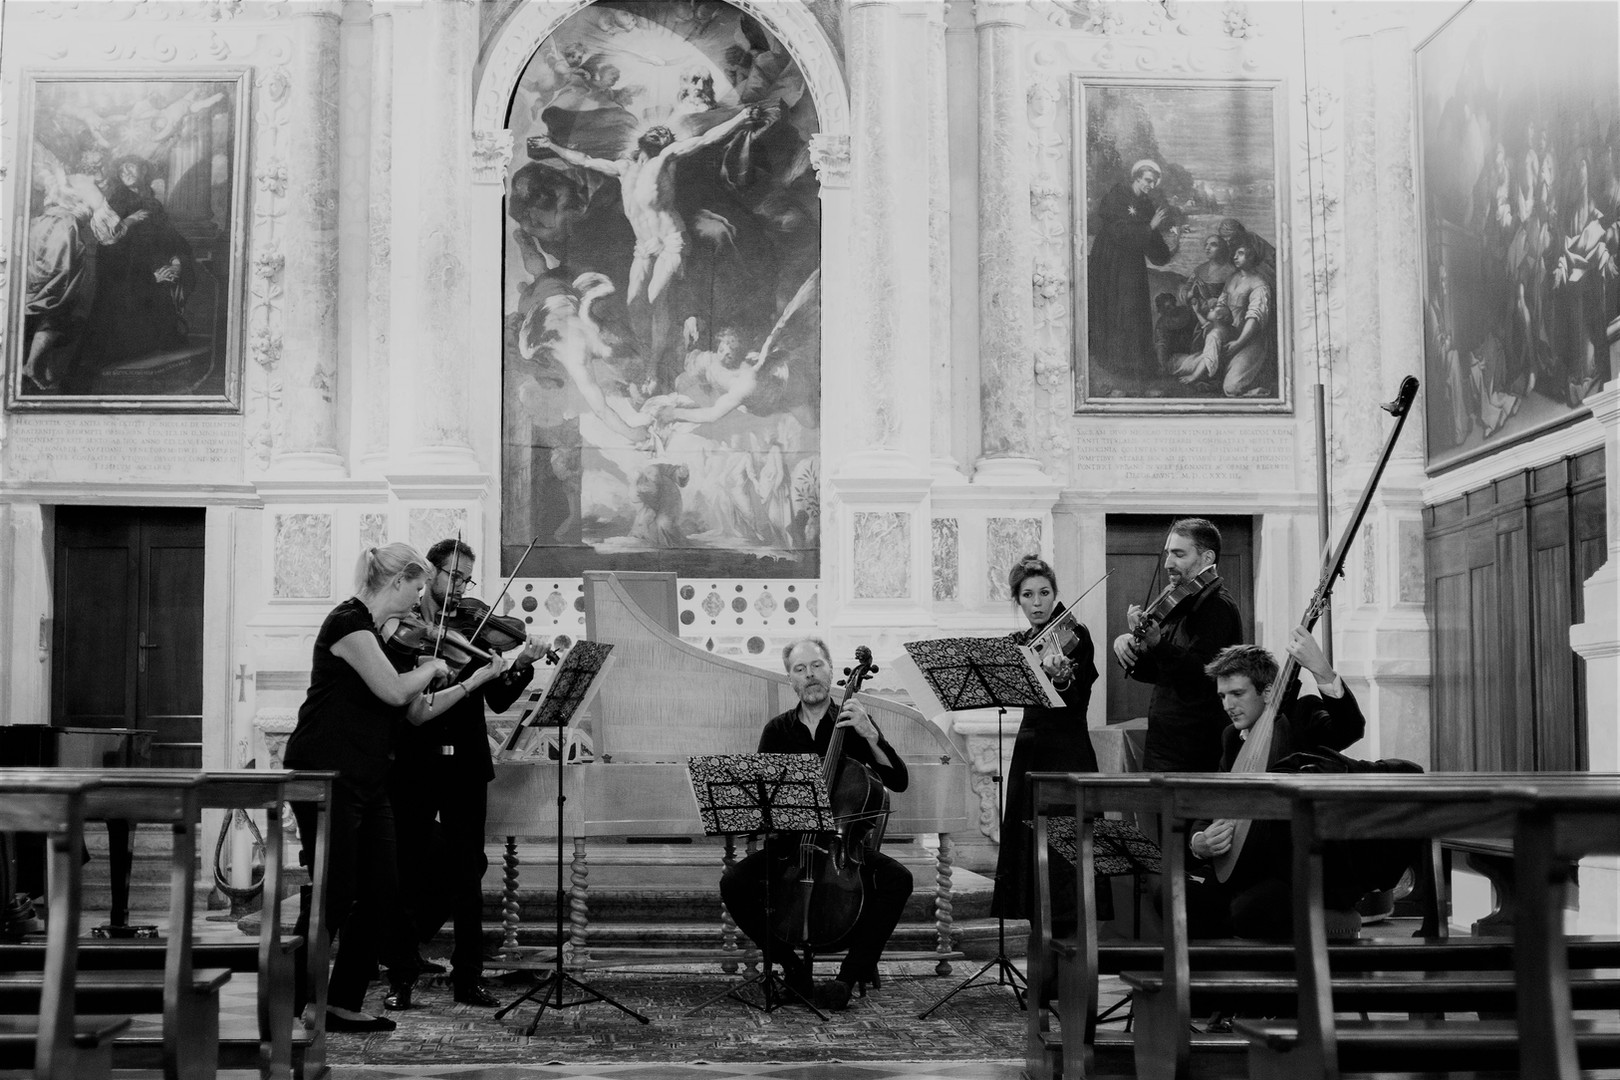 Concert in Vicenza